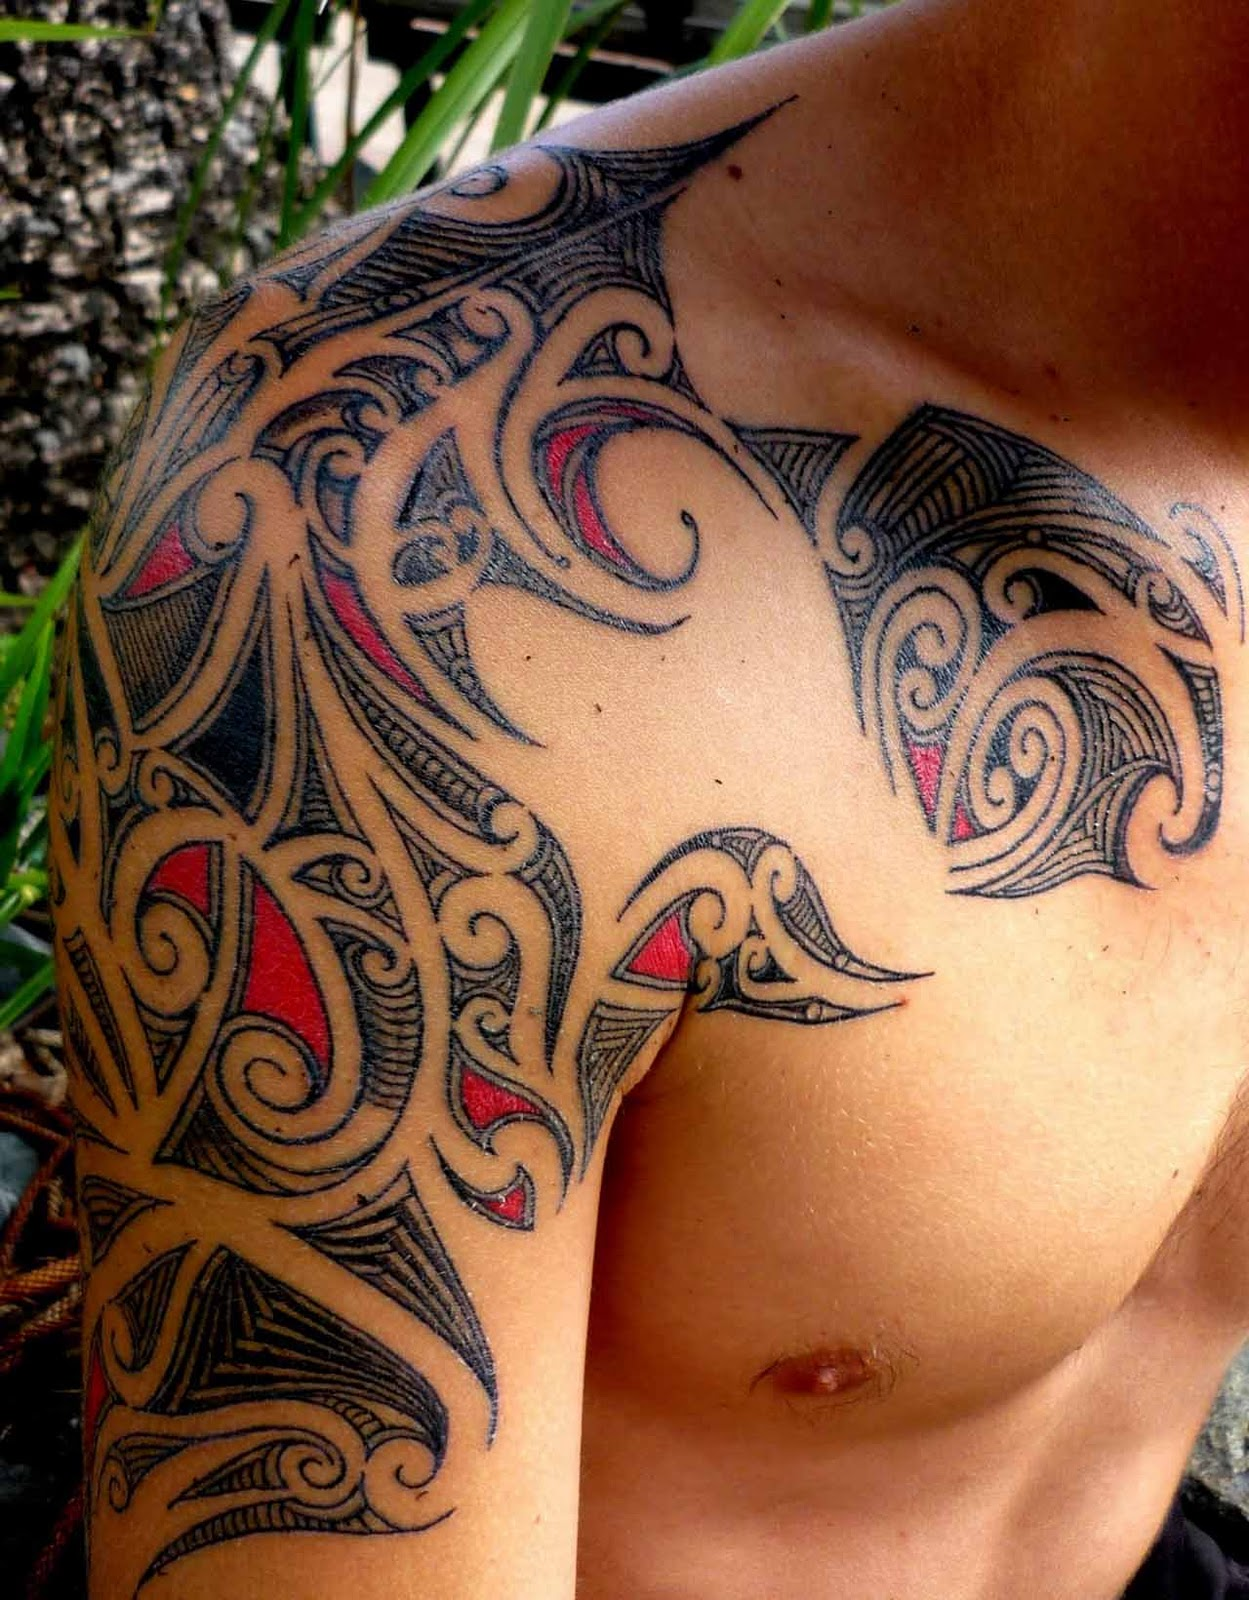 African symbol tattoos on wrist photo 10 2017 real photo african symbol tattoos on wrist photo 10 biocorpaavc Images